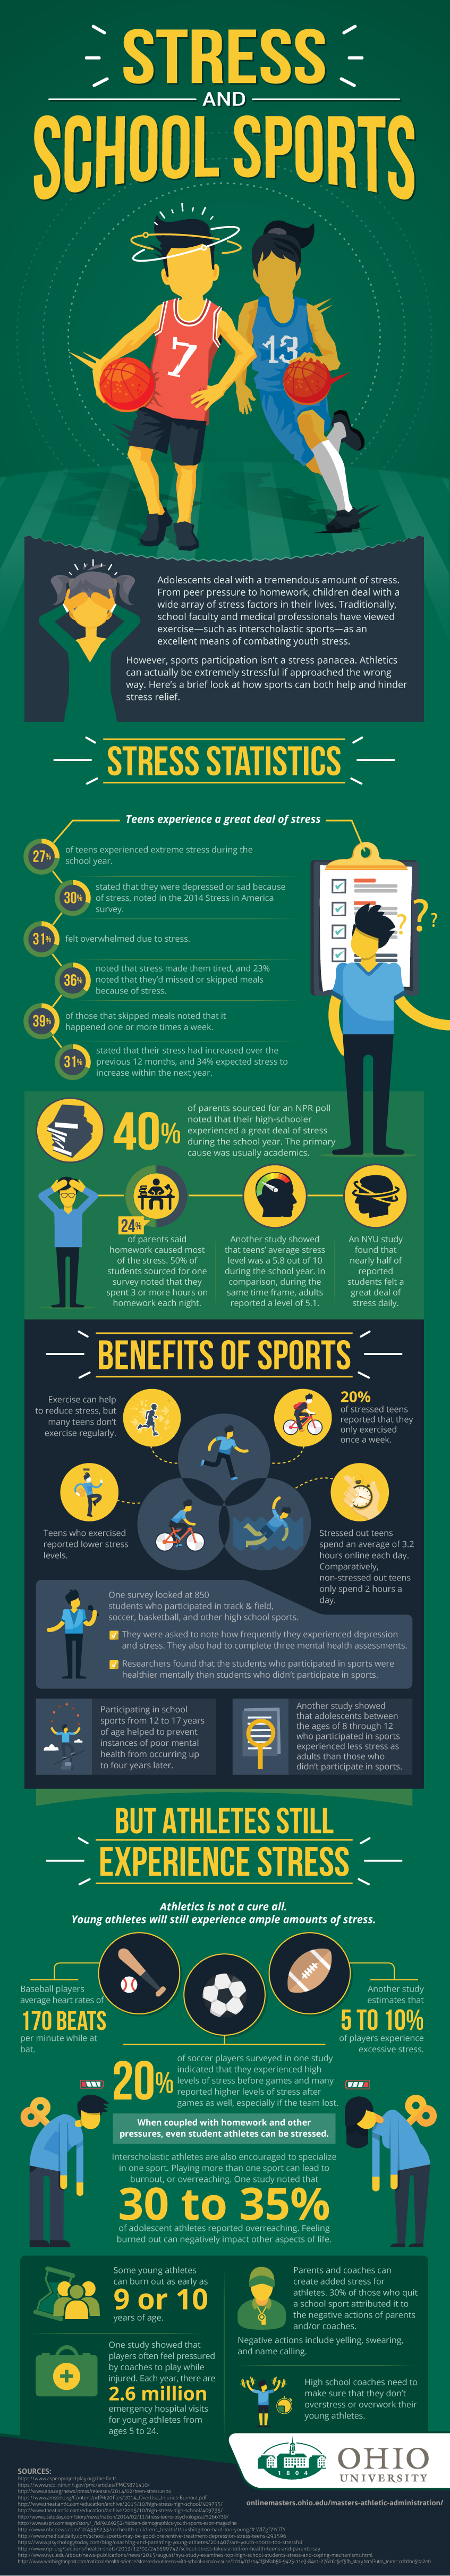 Stress And School Sports